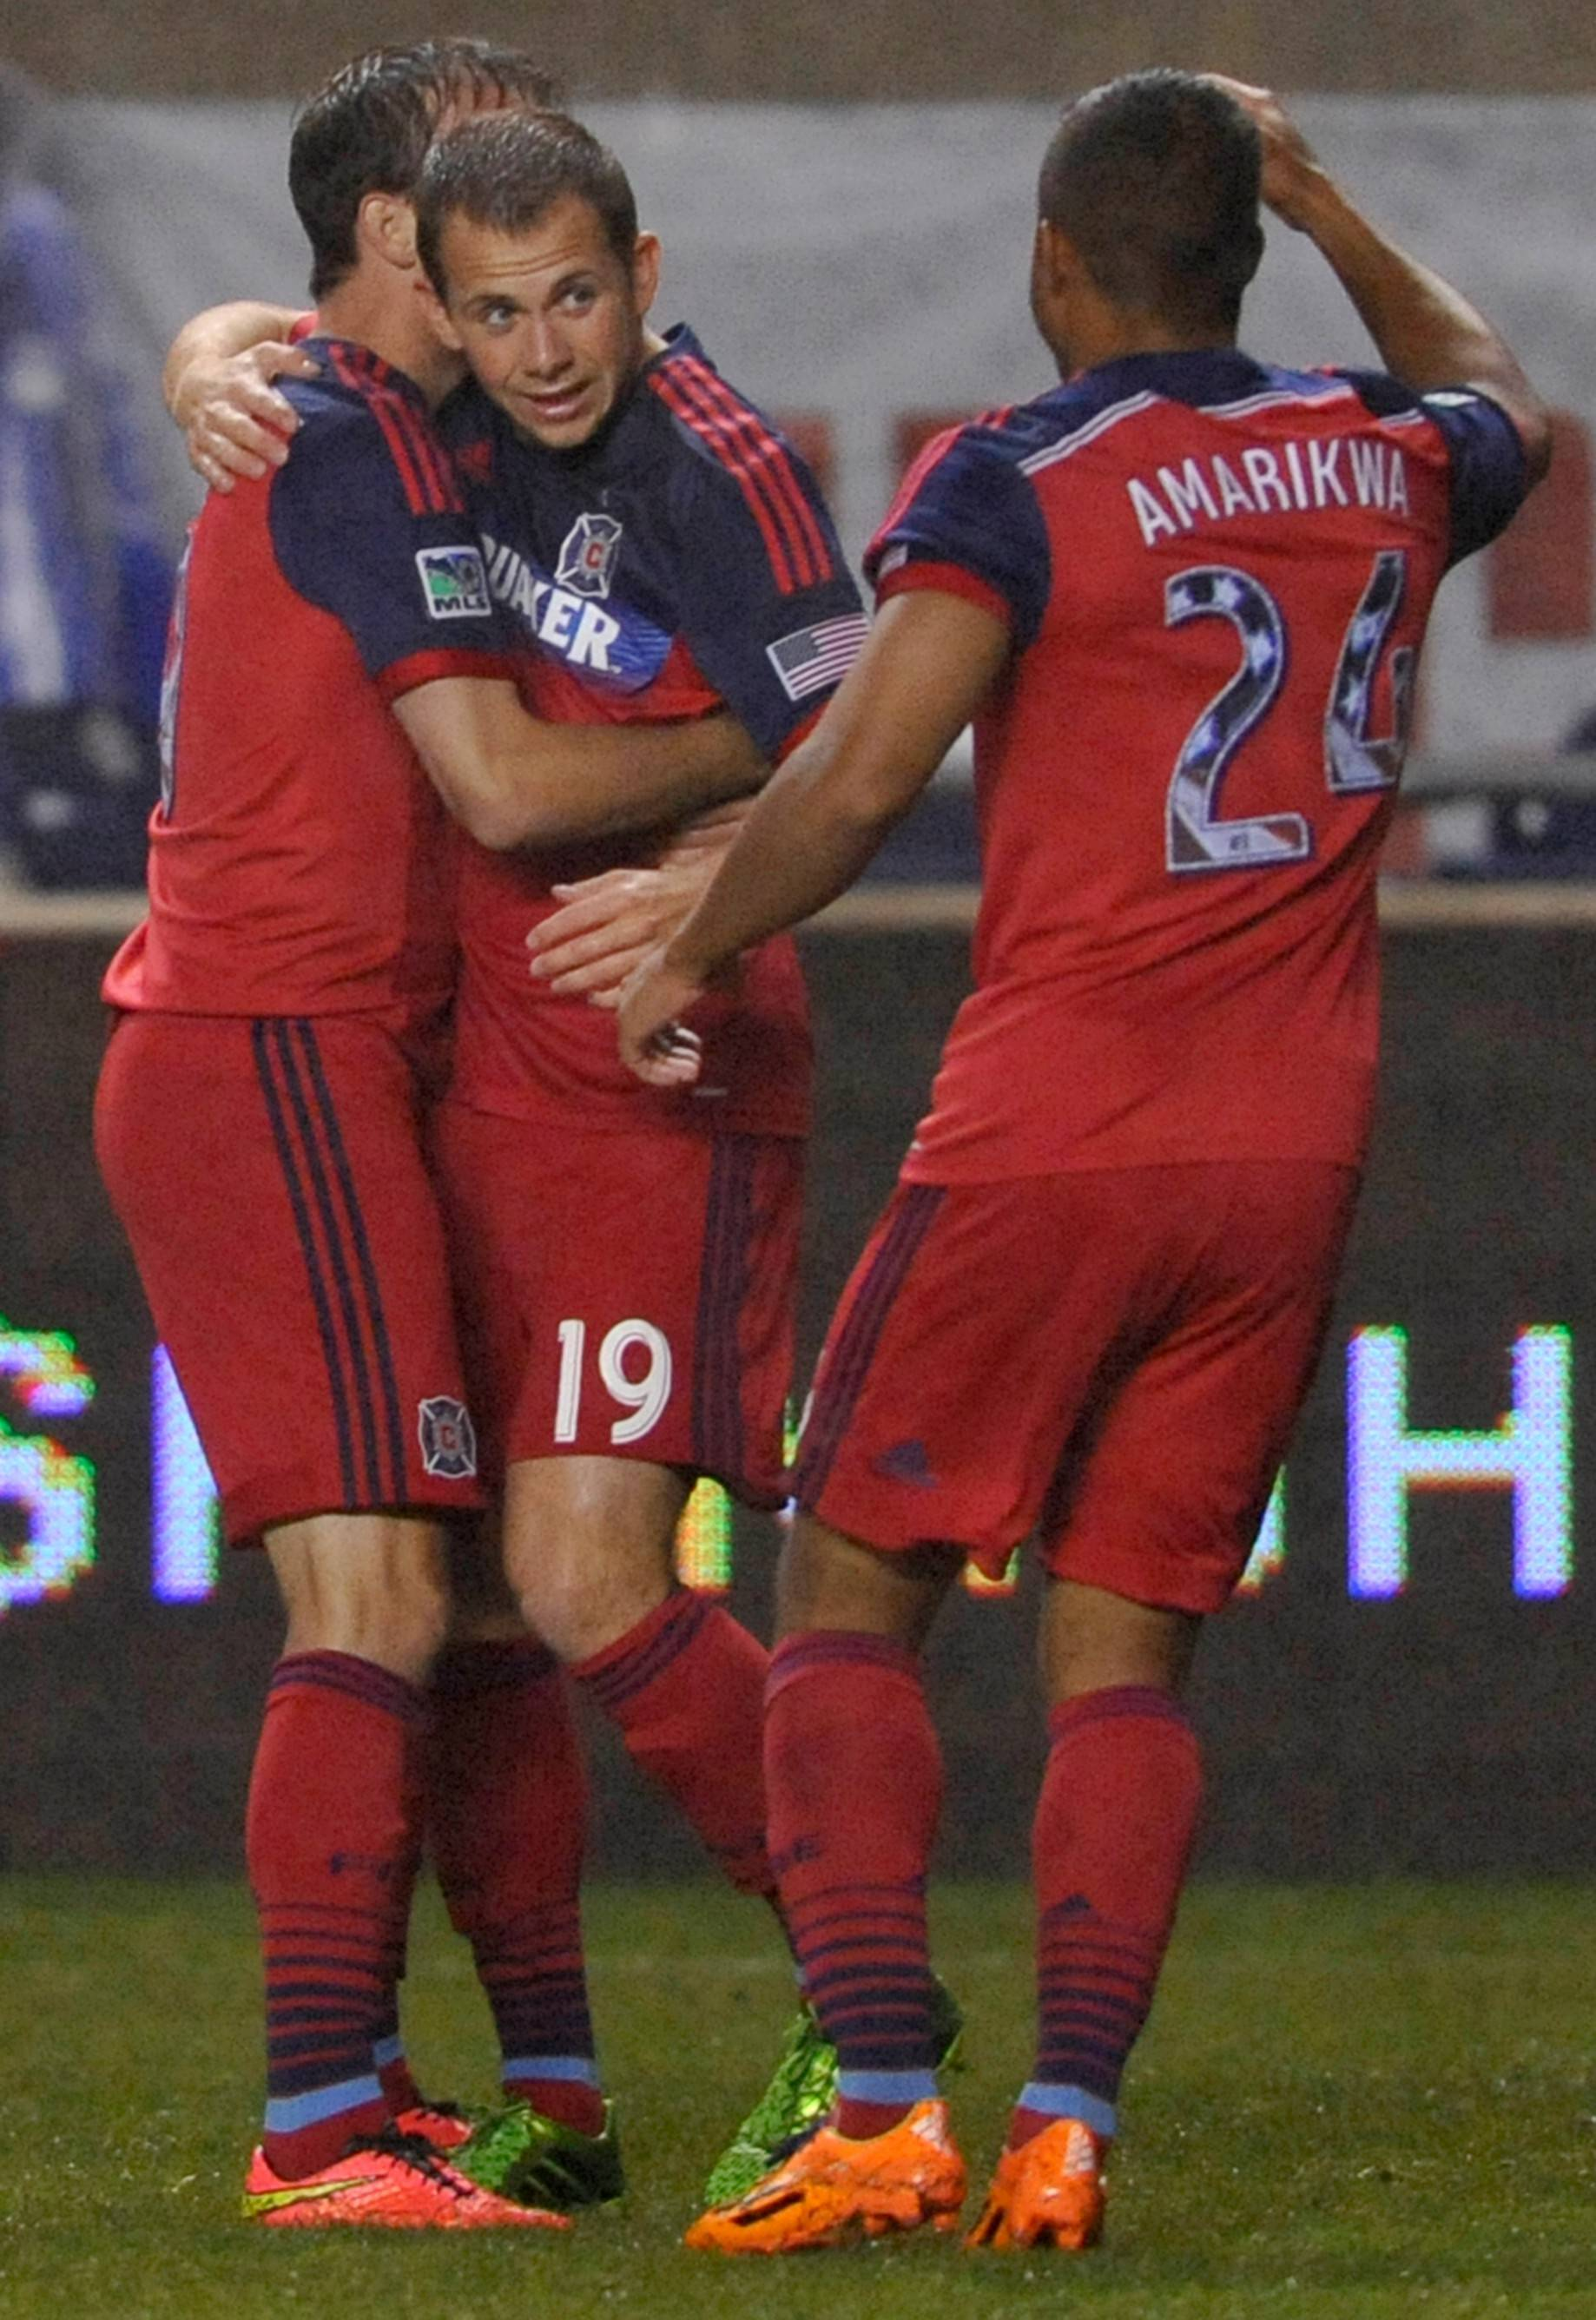 In weak Eastern Conference, Fire can still make playoffs